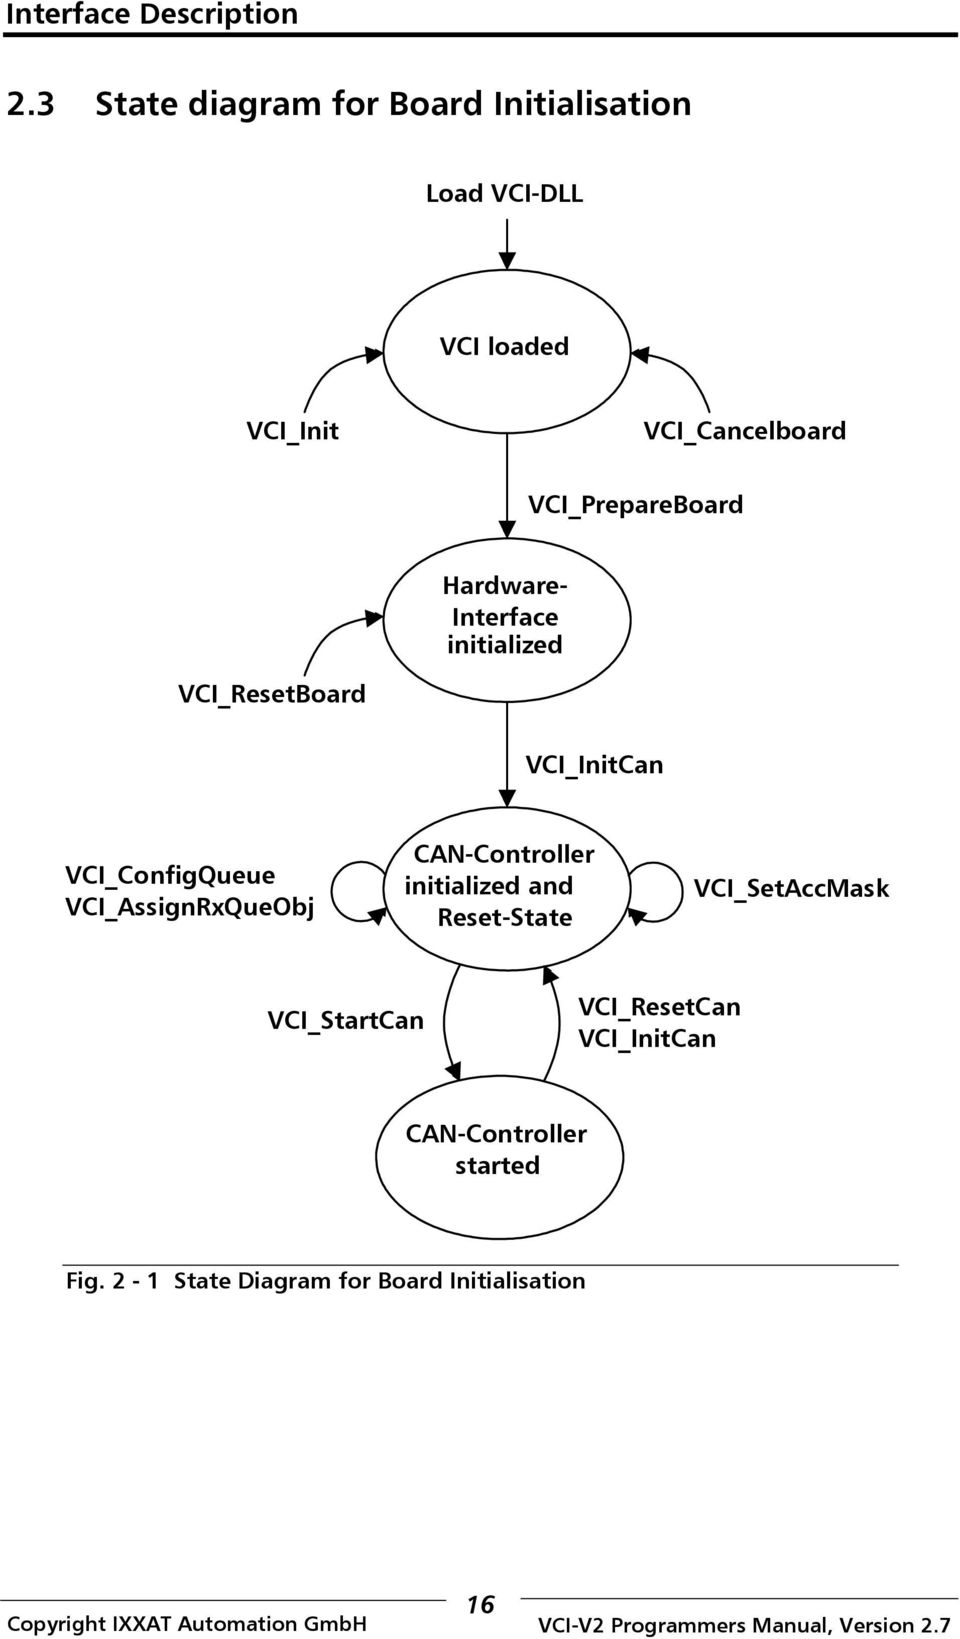 VCI_AssignRxQueObj CAN-Controller initialized and Reset-State VCI_SetAccMask VCI_StartCan